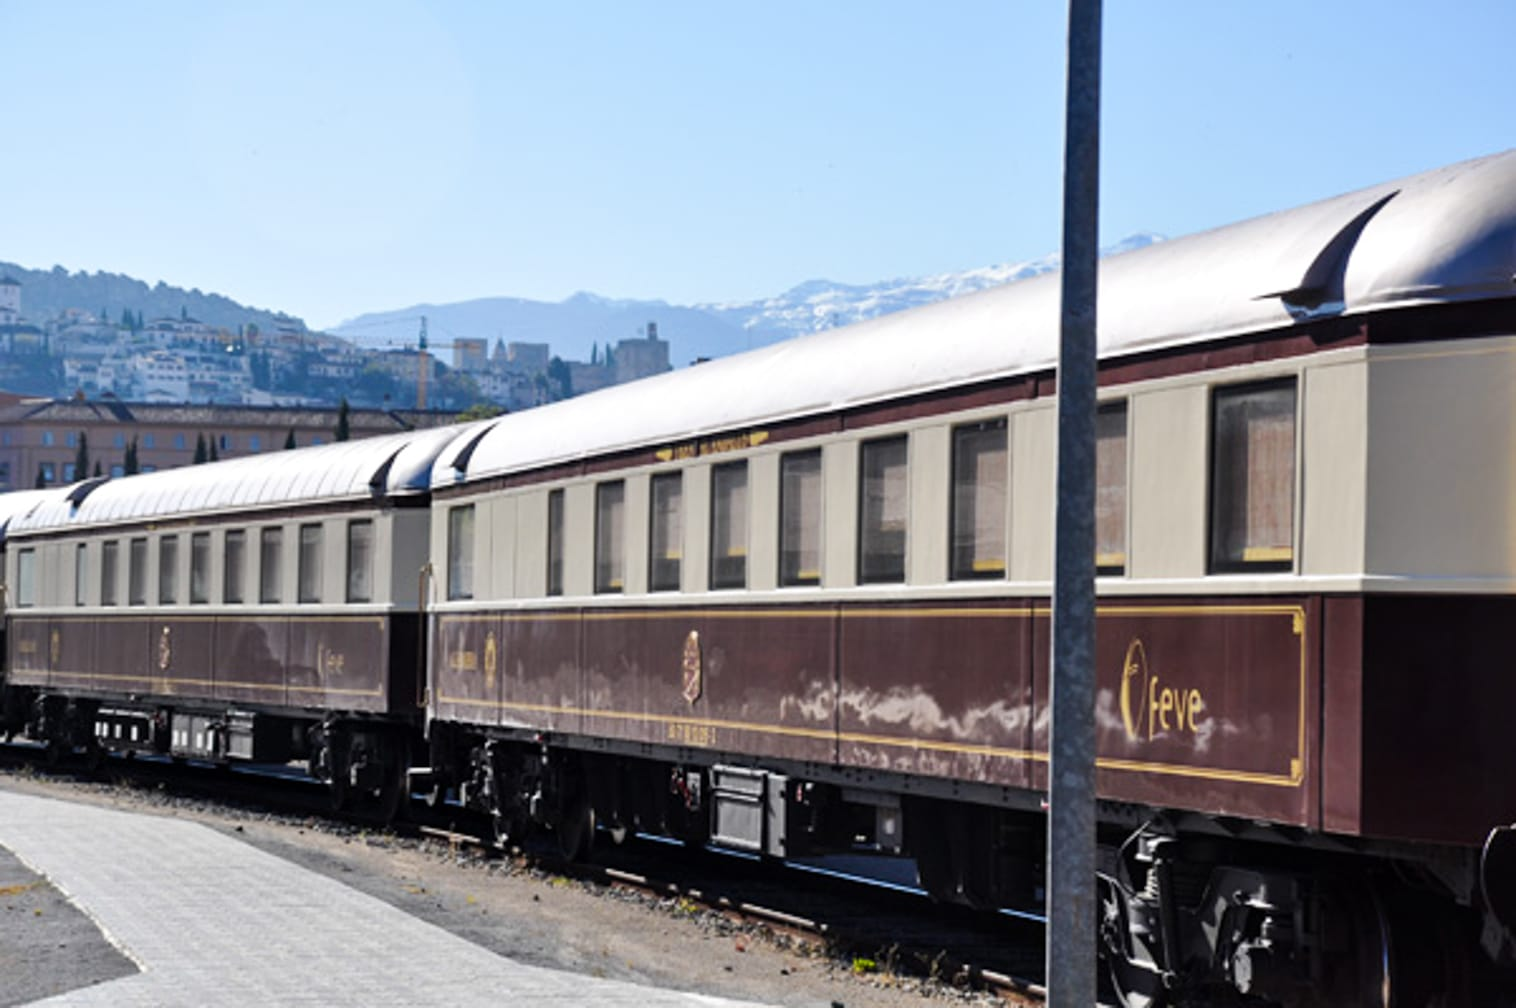 Al-Andalus: Southern Spain by Luxury Rail train